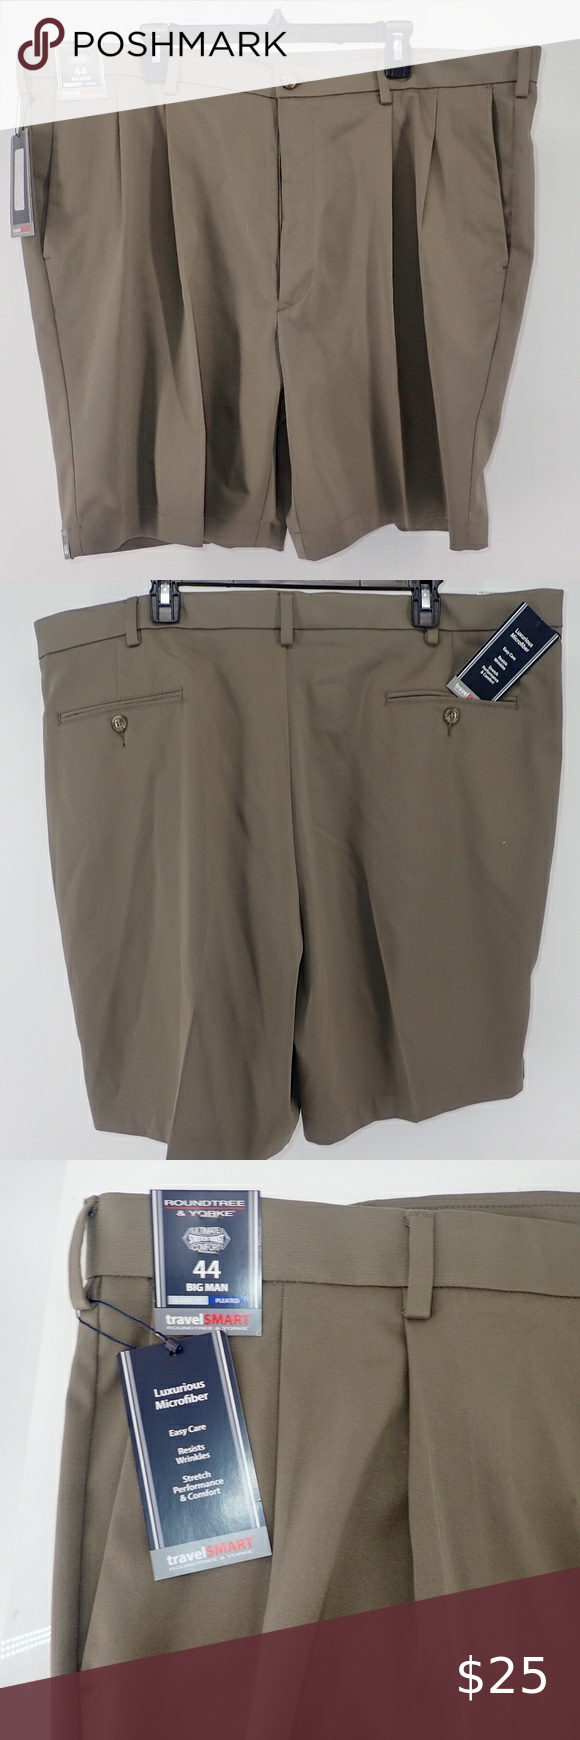 Roundtree /& Yorke Classic Fit BIG Easy Care White Pleated Walking Shorts NWT